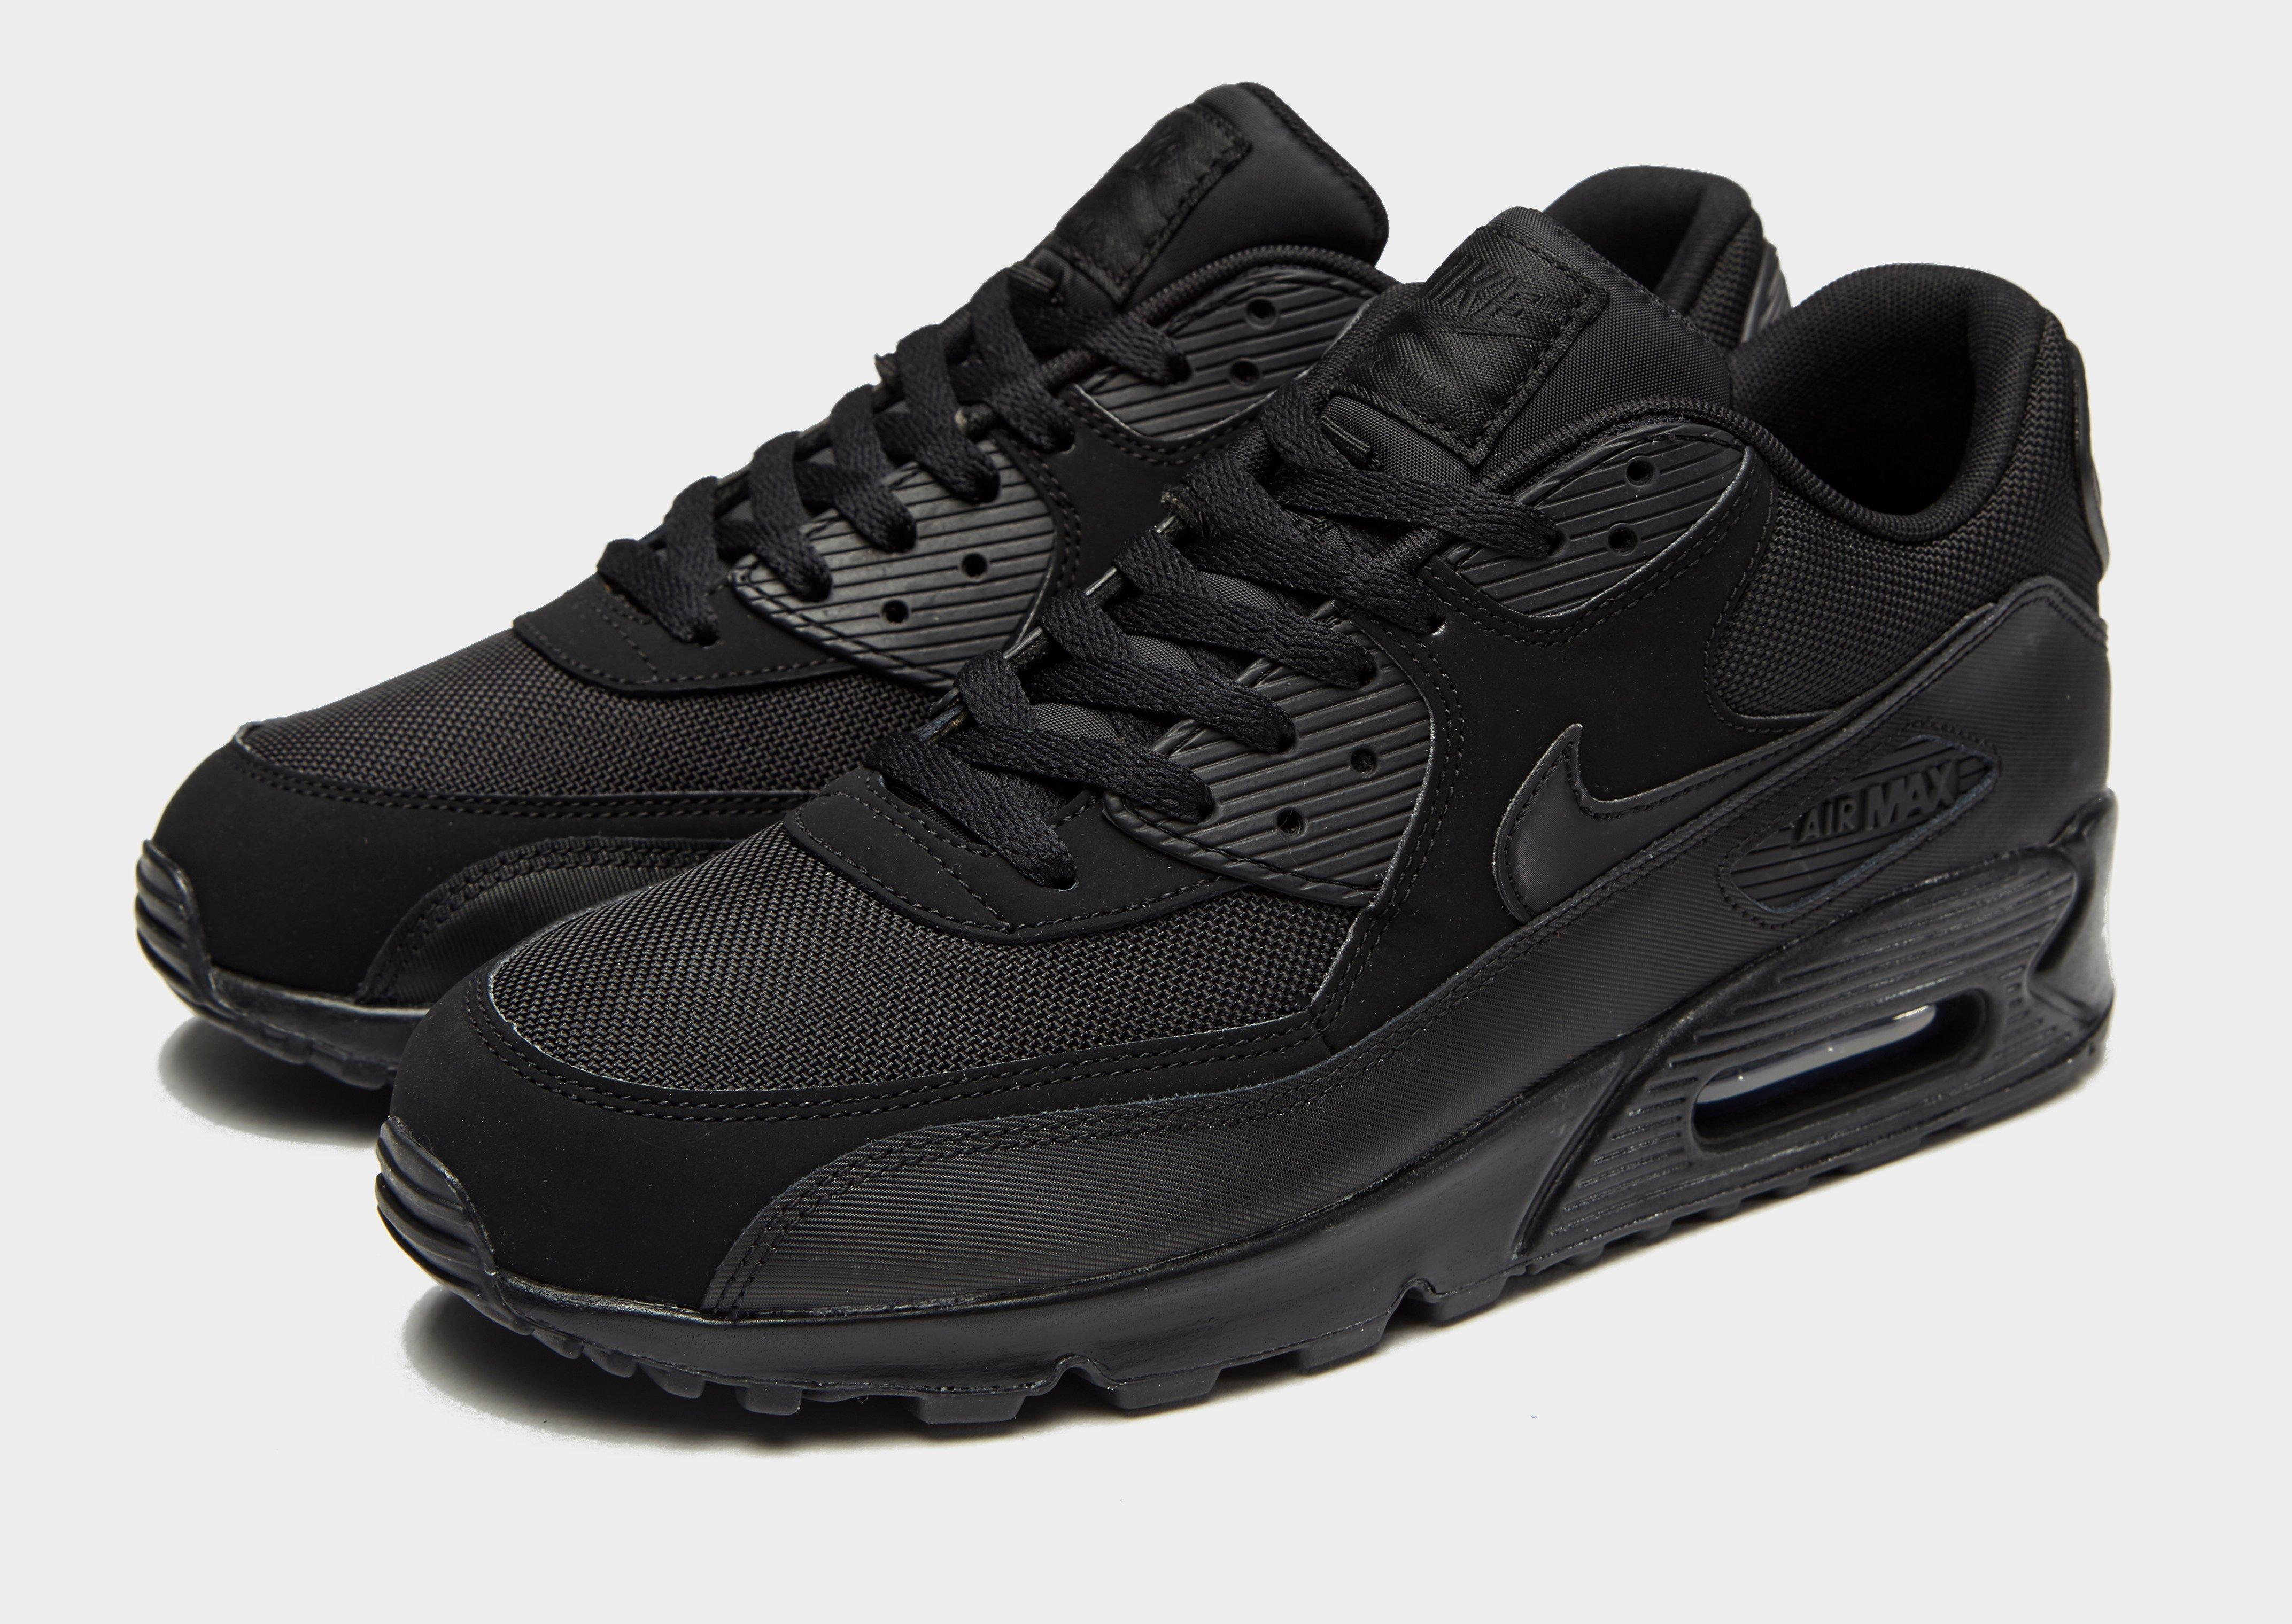 My Air Max Co Uk Camo Nike Shox Shipped From The Us States On Earth ... 3f435fc0c54